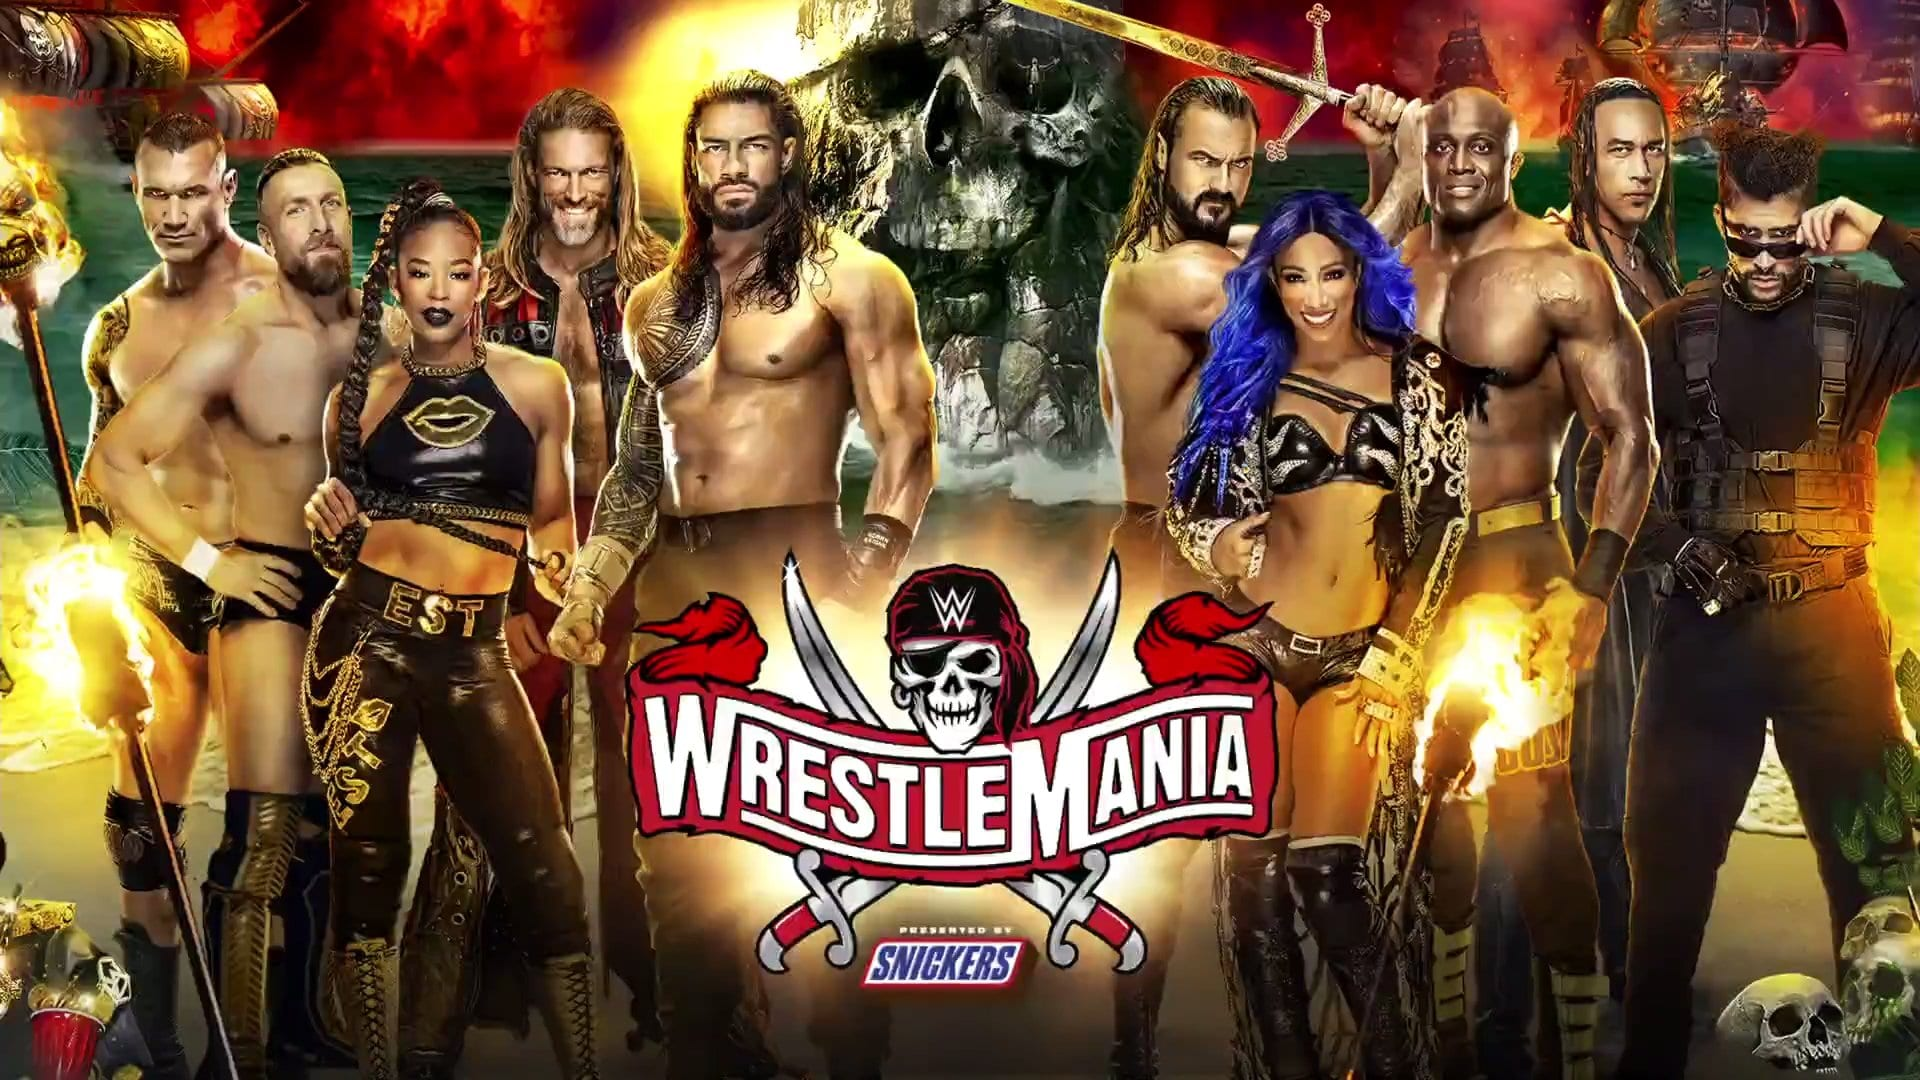 Wwe Announces Main Event And Opening Match For Wrestlemania 37 Night One Wrestling Inc